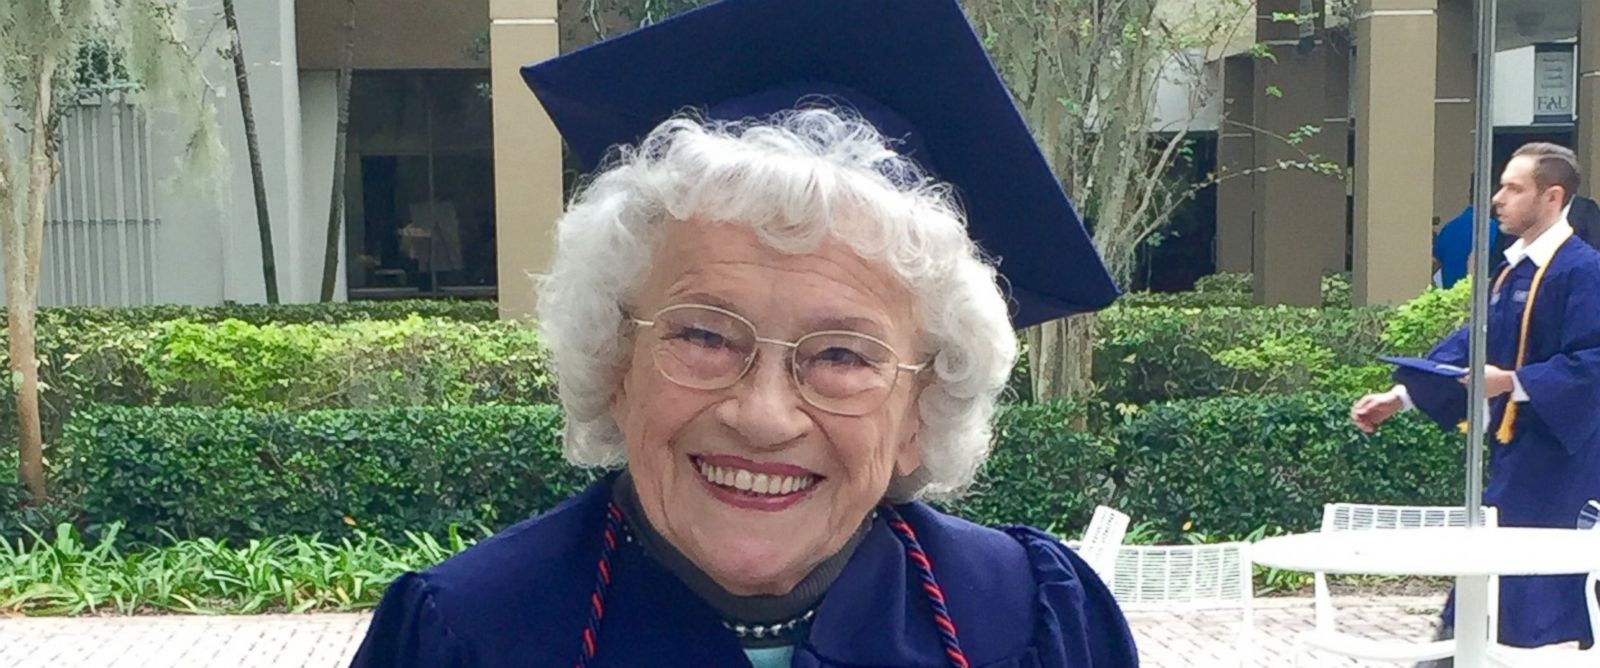 PHOTO: Betty Reilly, 89, is one of the oldest undergraduates to receive a bachelors degree from Florida Atlantic University.